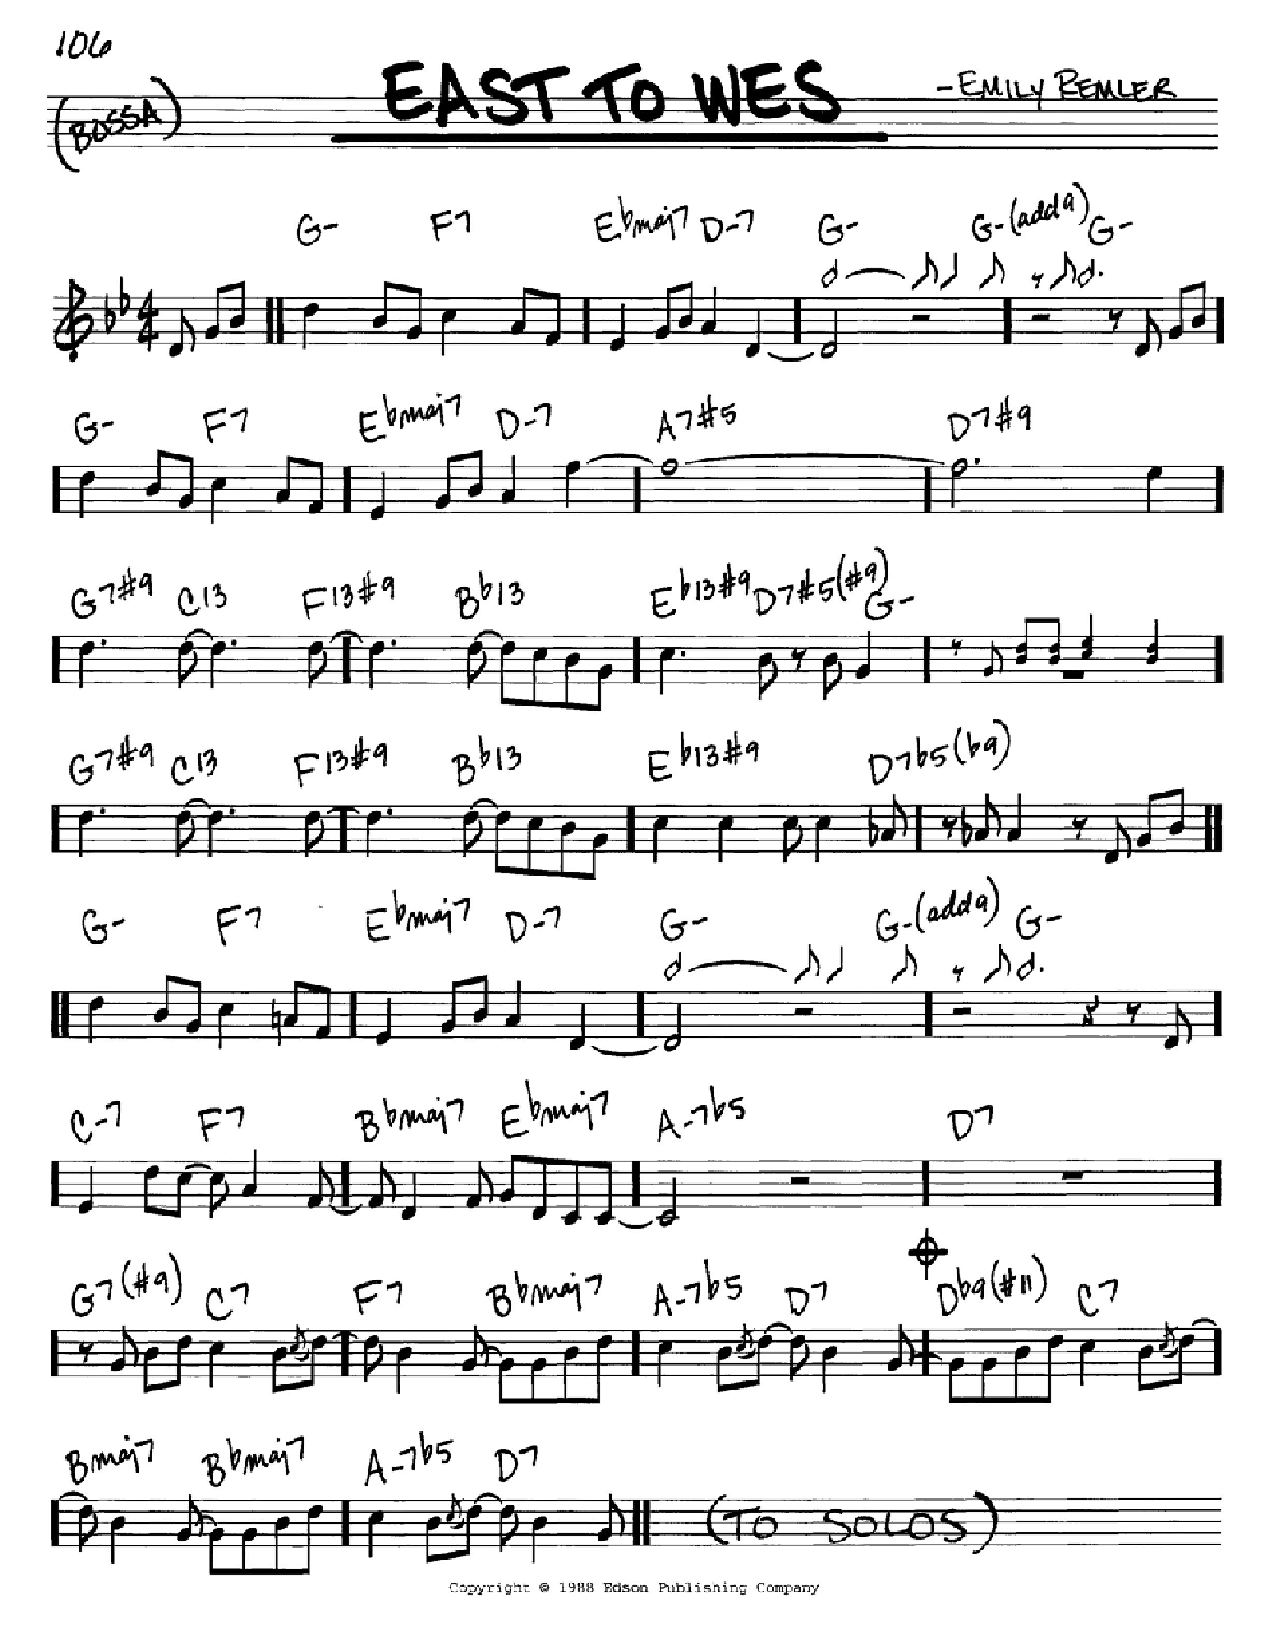 East To Wes Sheet Music